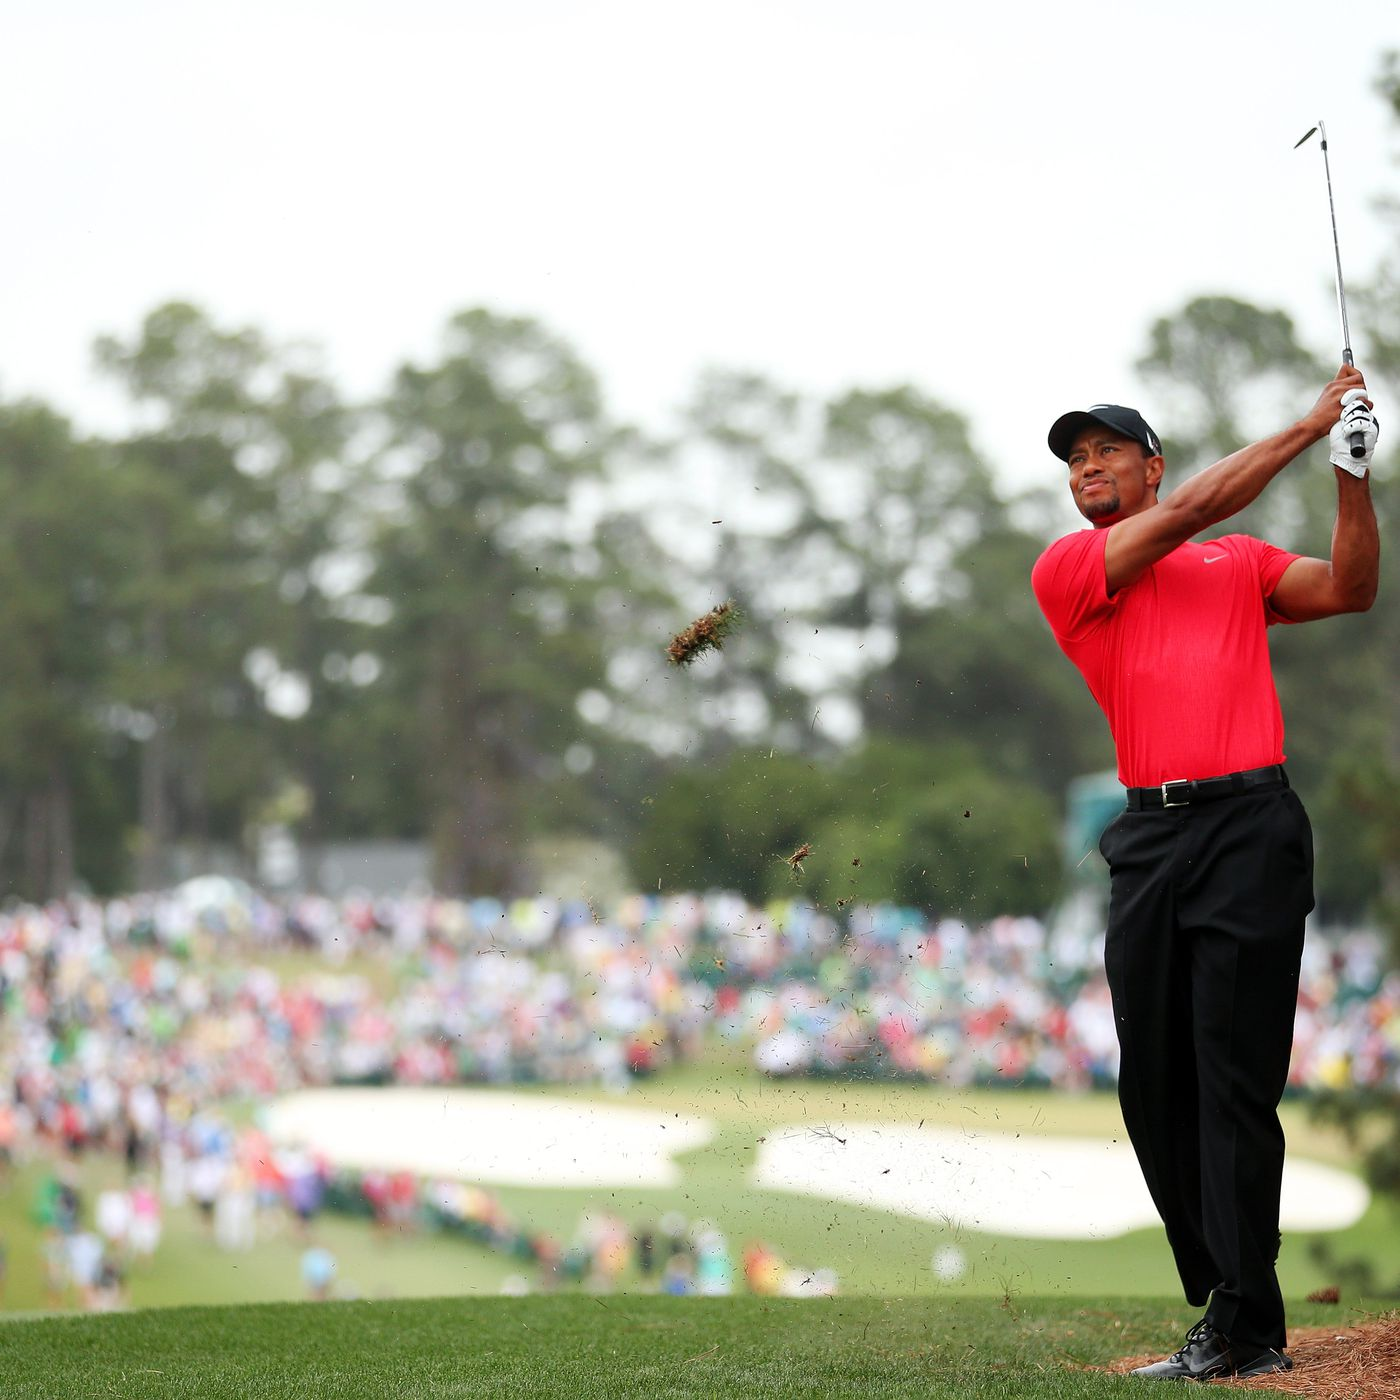 b5bf9cc3c Masters 'scripting' -- Who is wearing what at Augusta and who gives ...